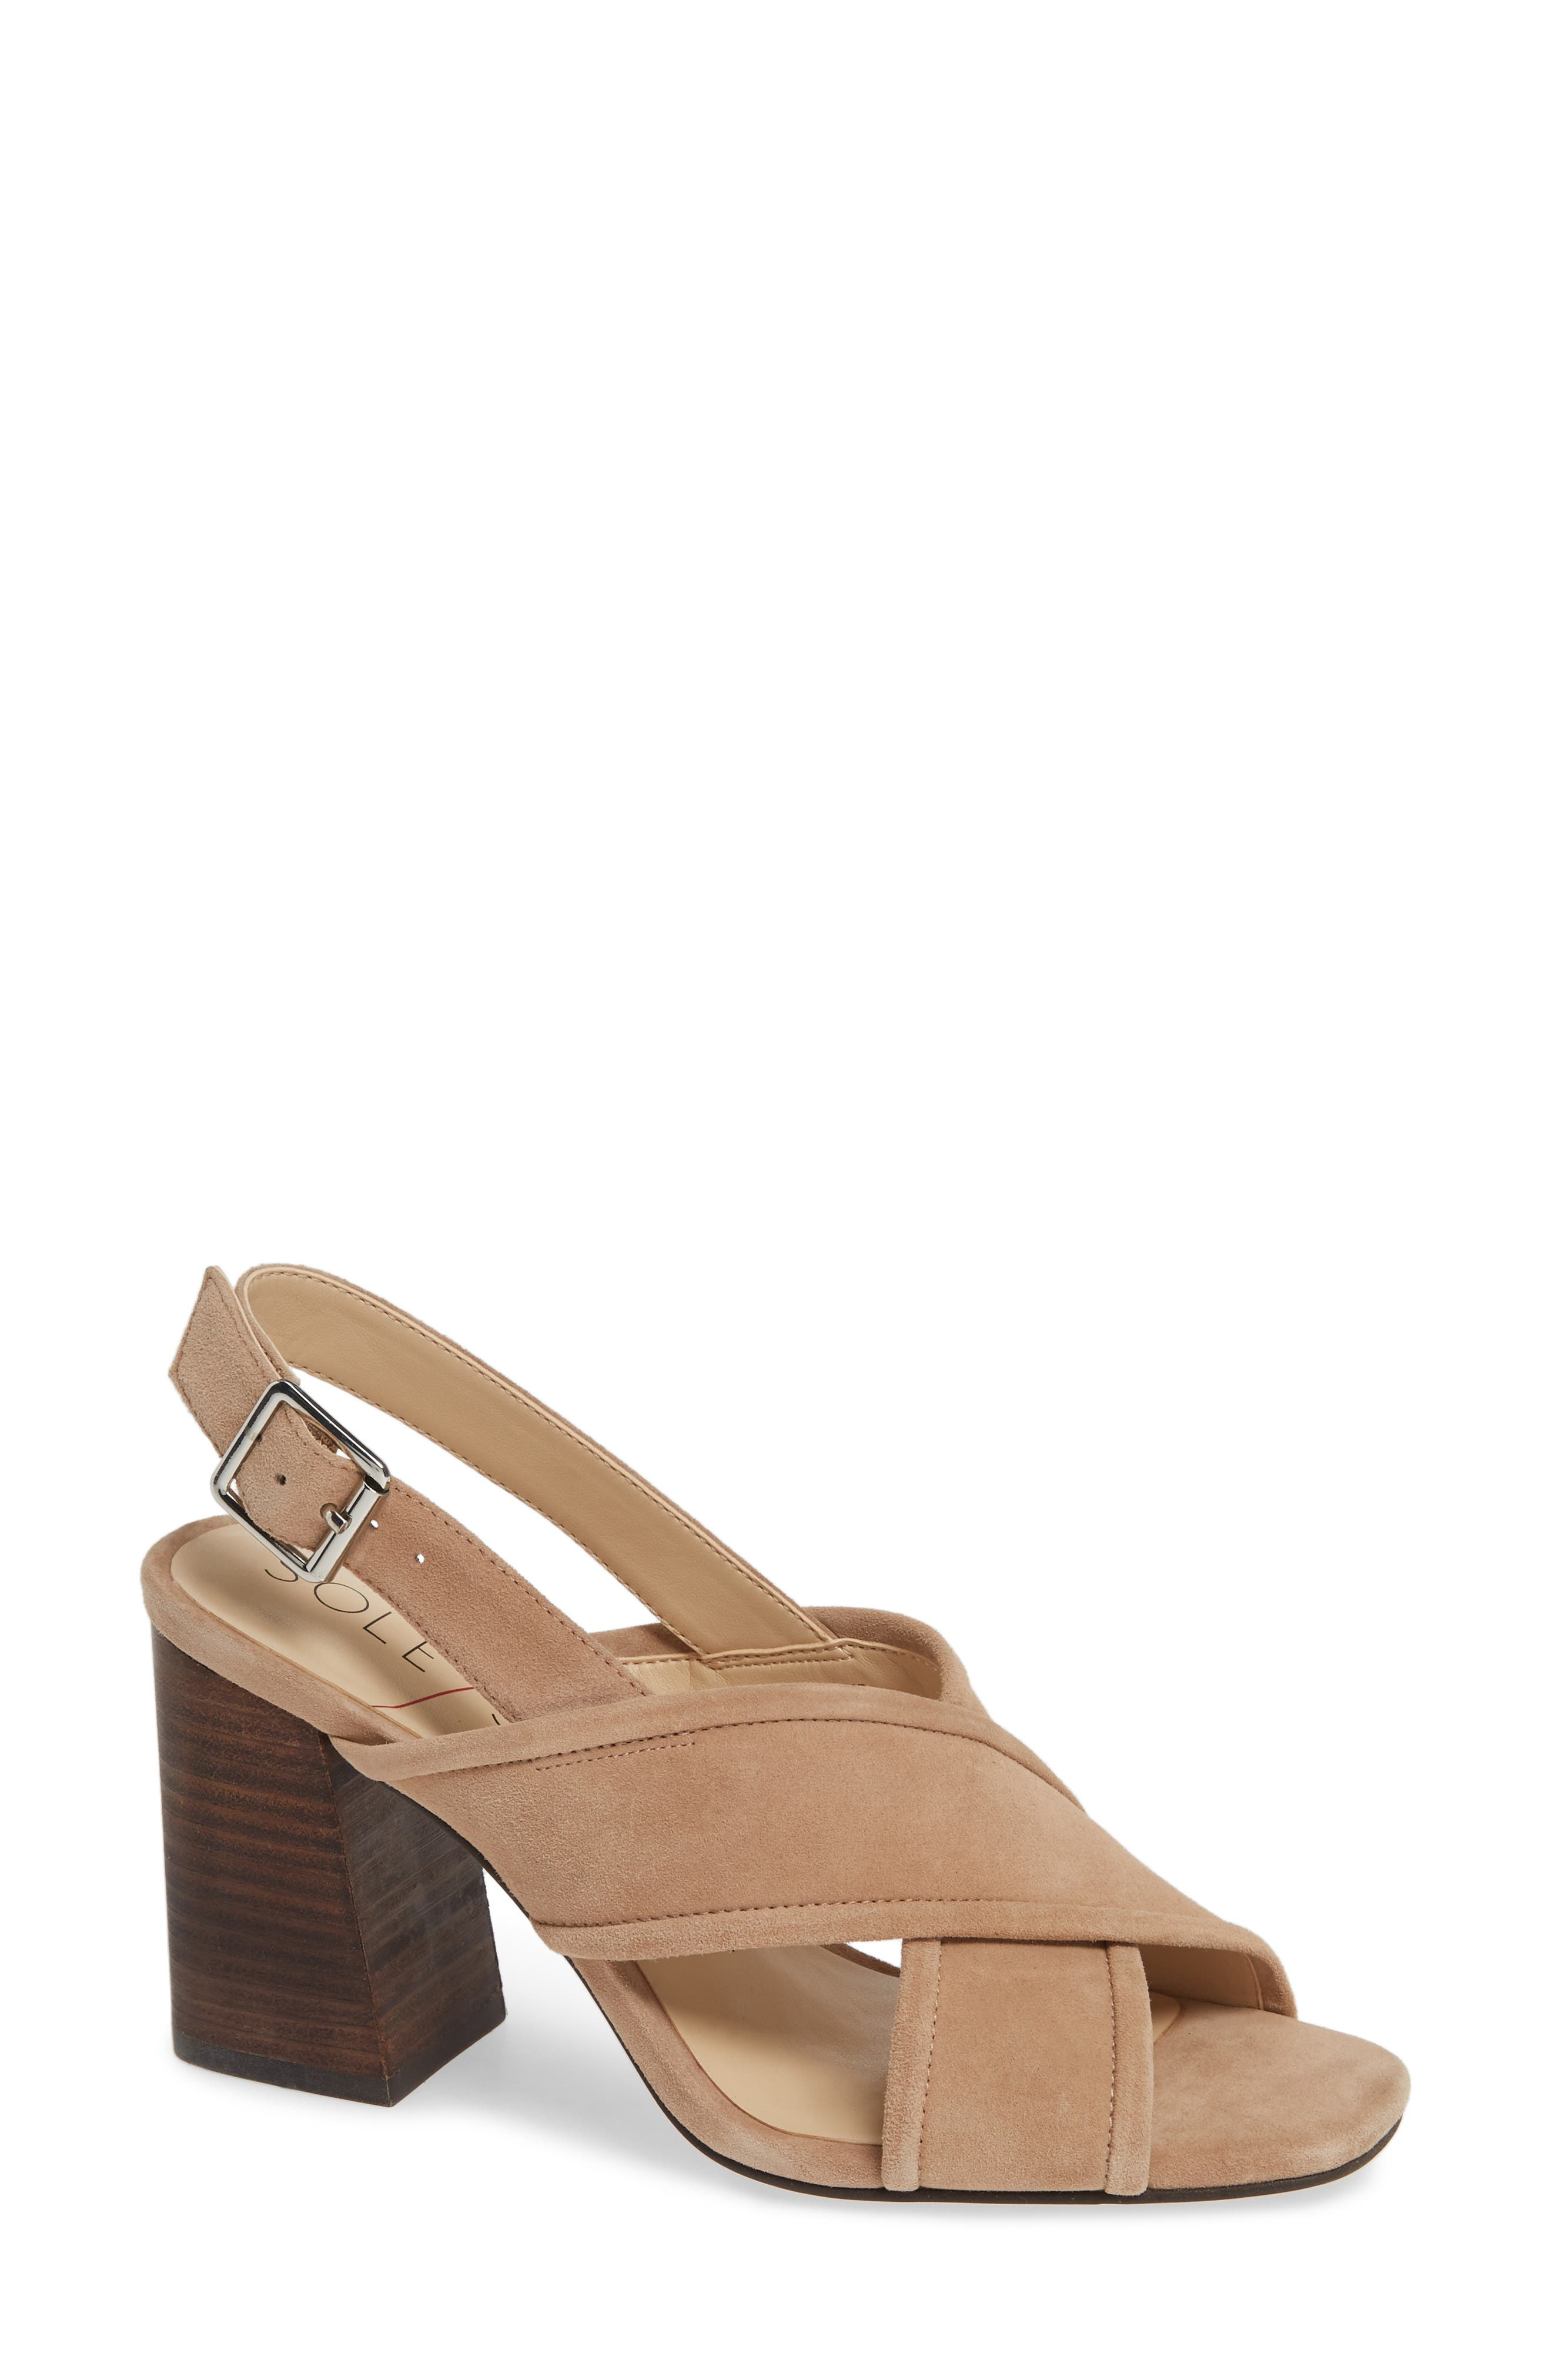 Joree Slingback Sandal,                             Main thumbnail 1, color,                             DUSTED TAUPE SUEDE